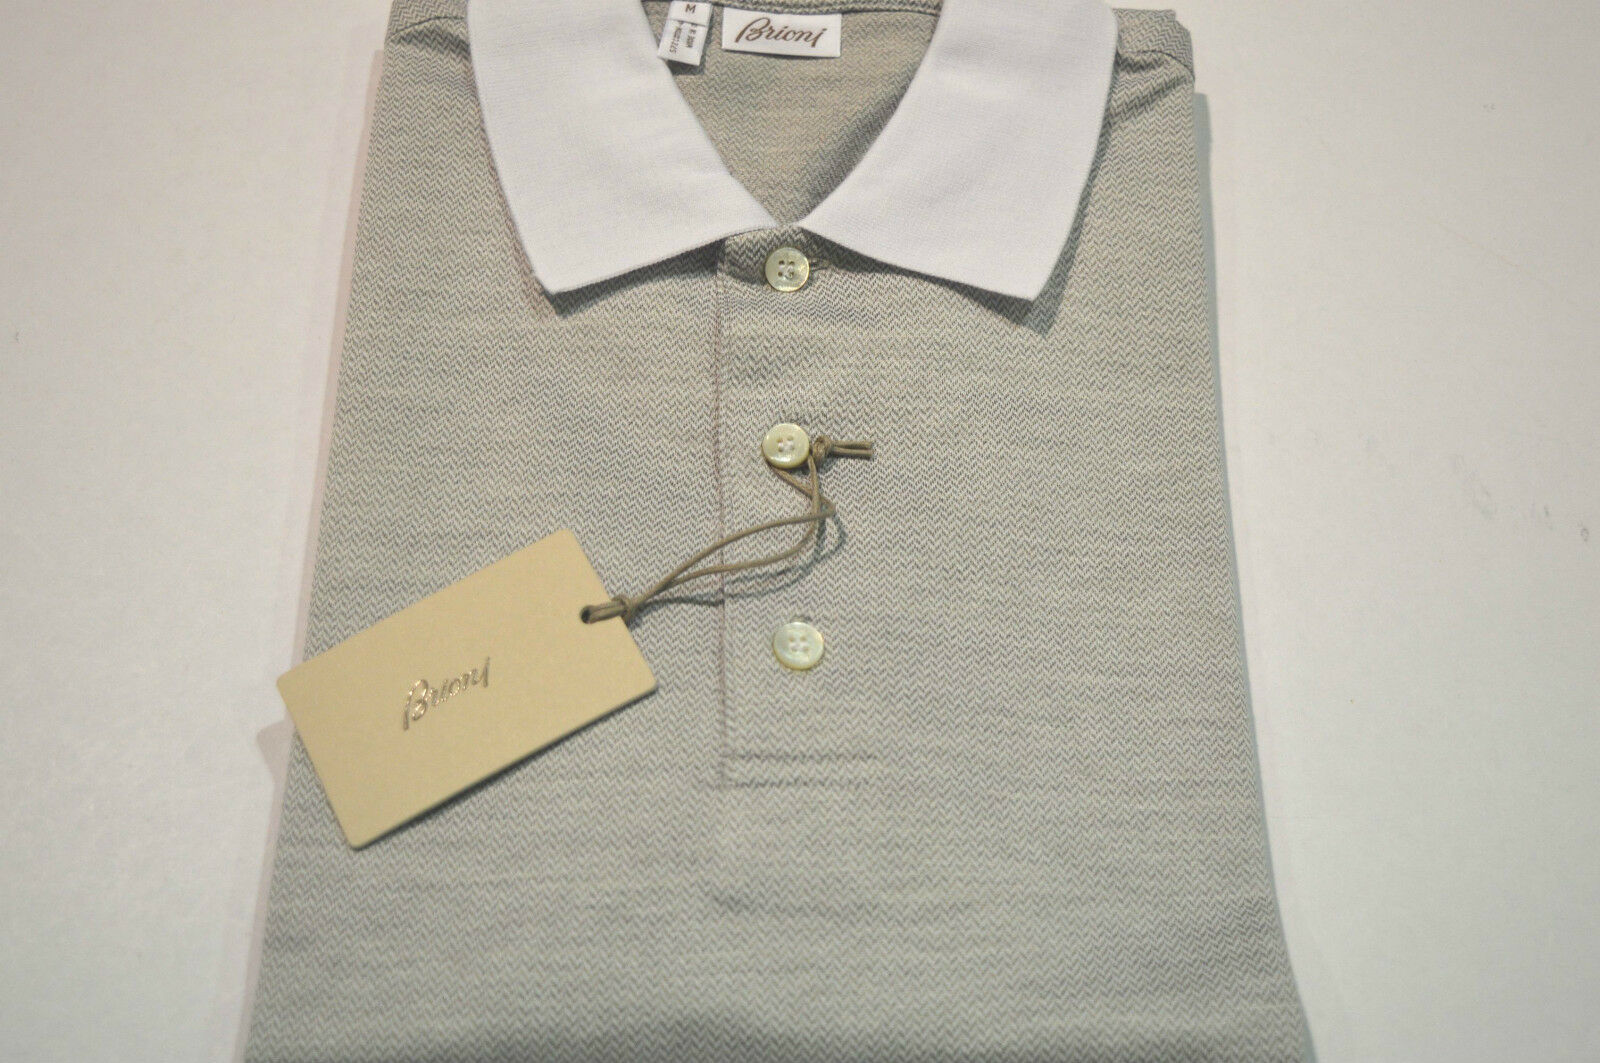 NEW  BRIONI Polo  Short Sleeve Cotton SIlk Größe M Us Eu 50 (SpZig)